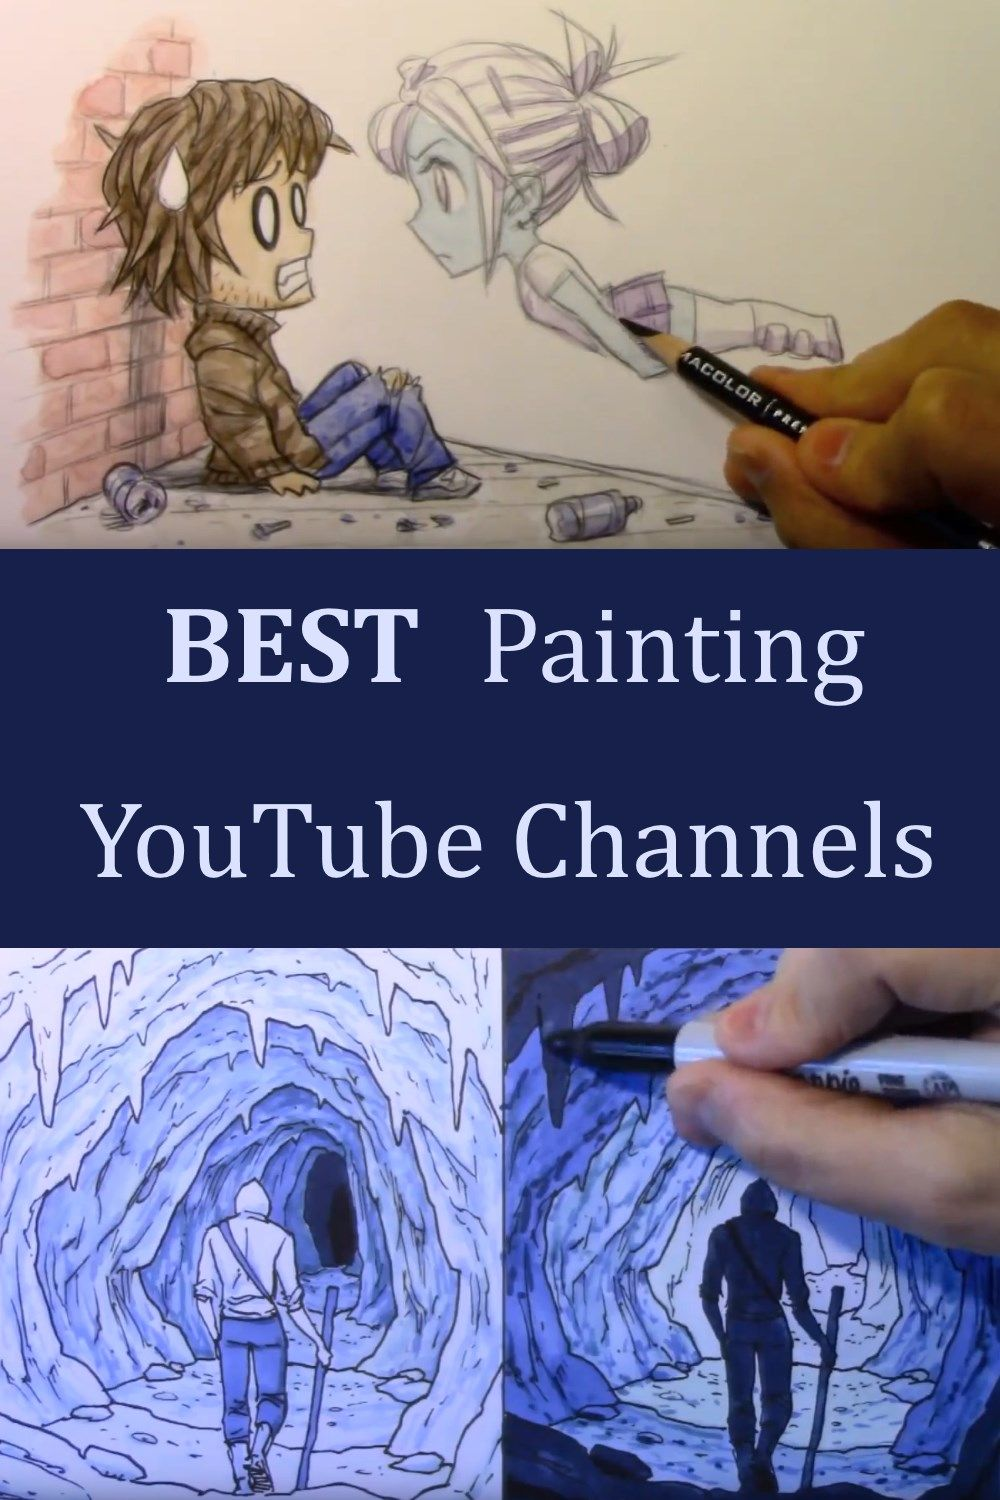 Best Youtube Channels For Learning To Paint In 2020 Online Art